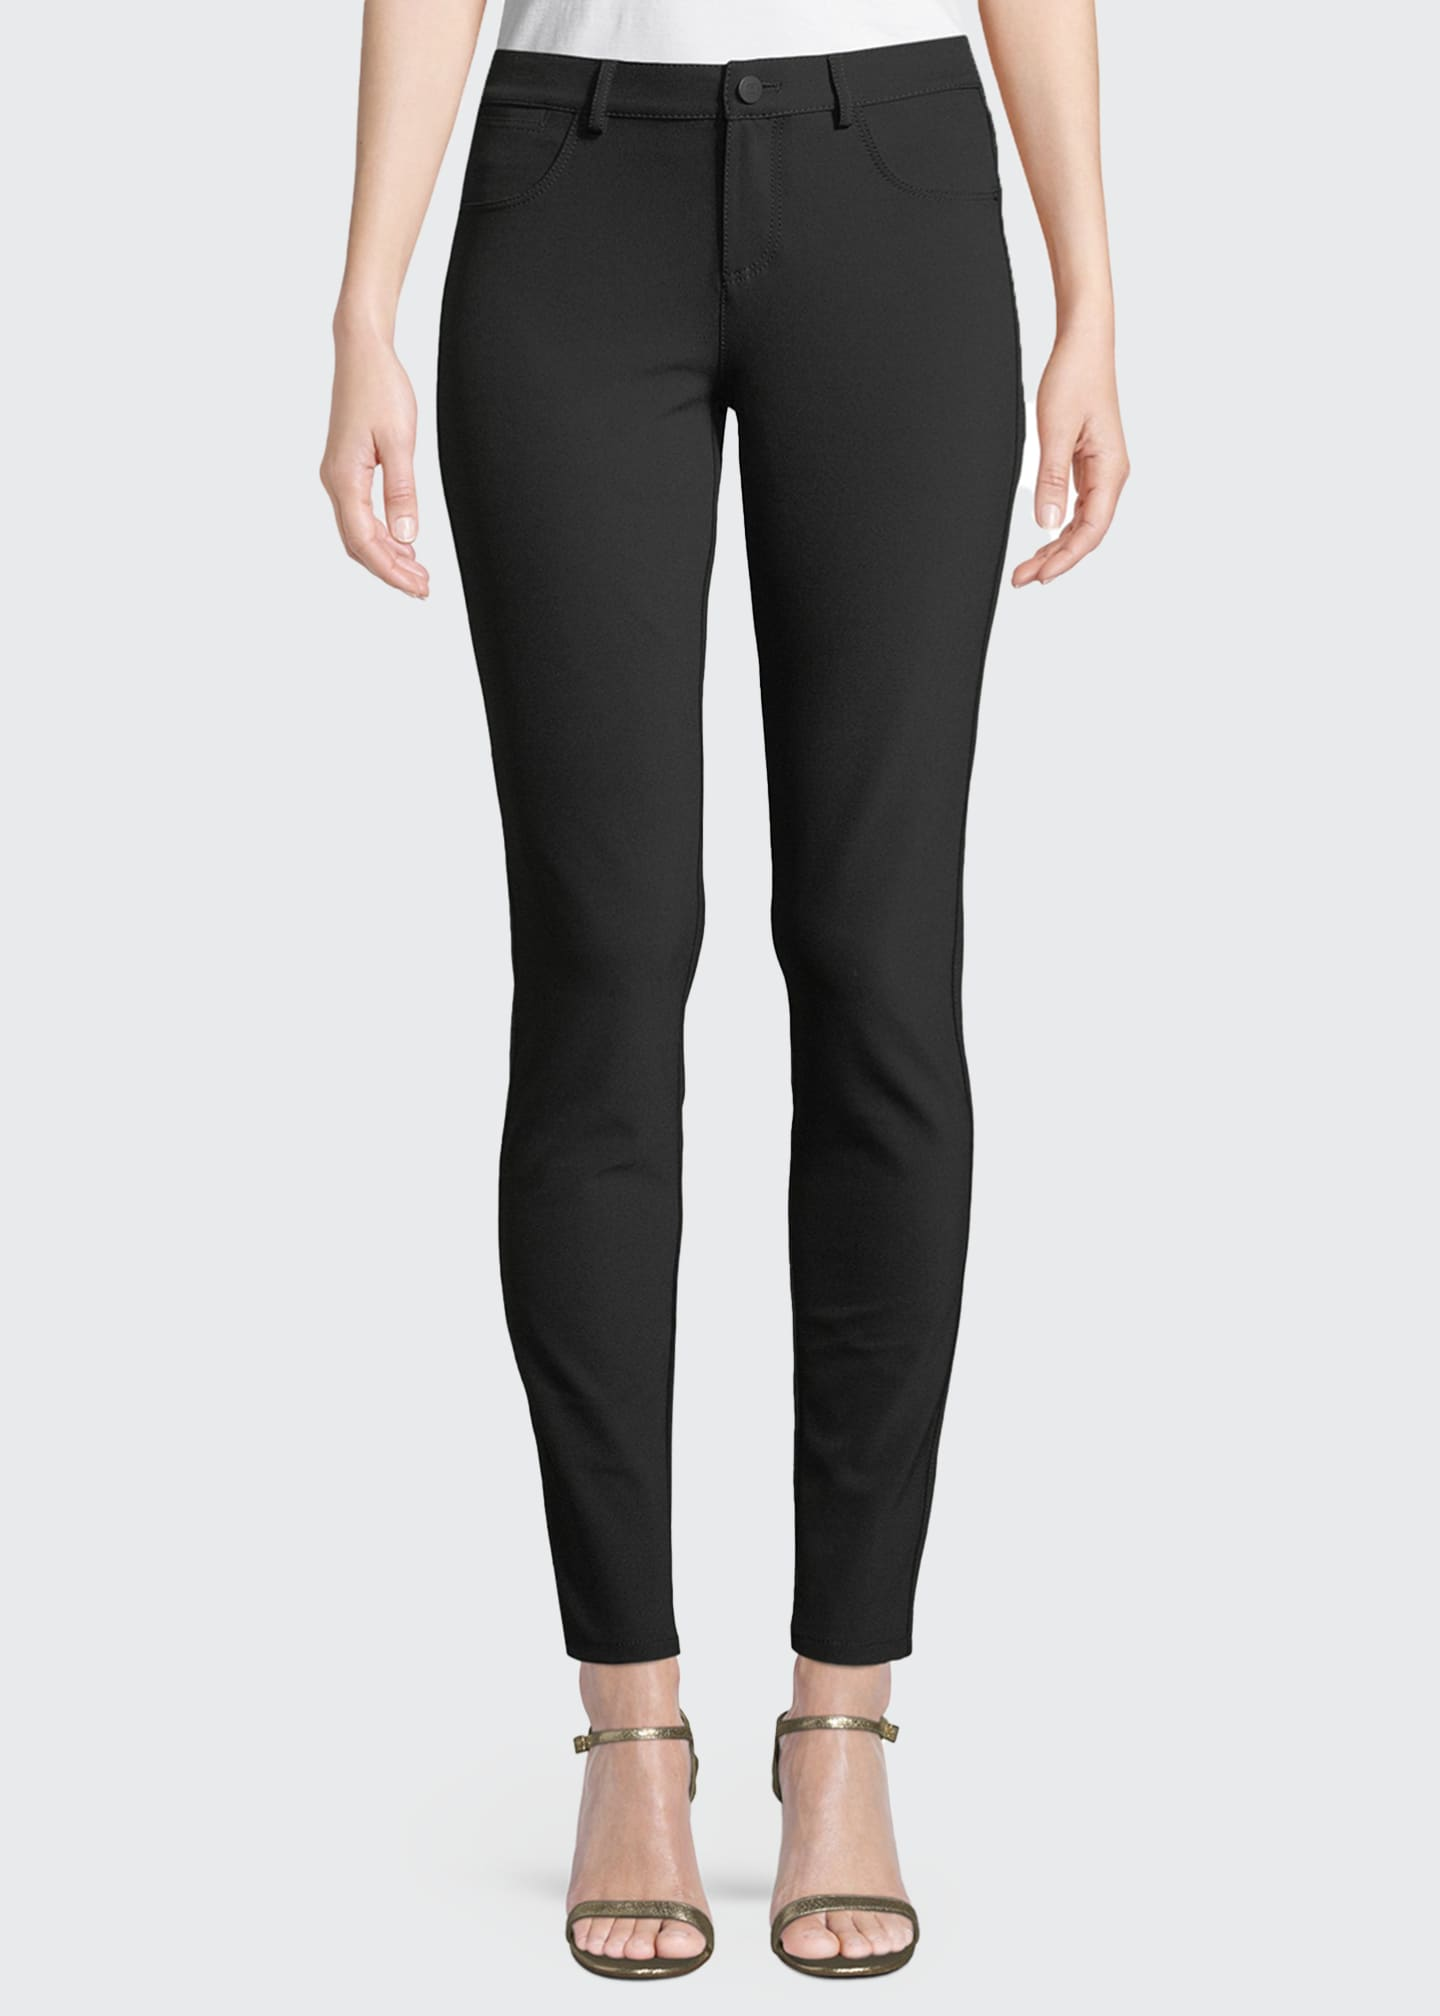 Lafayette 148 New York Mercer Acclaimed Stretch Mid-Rise